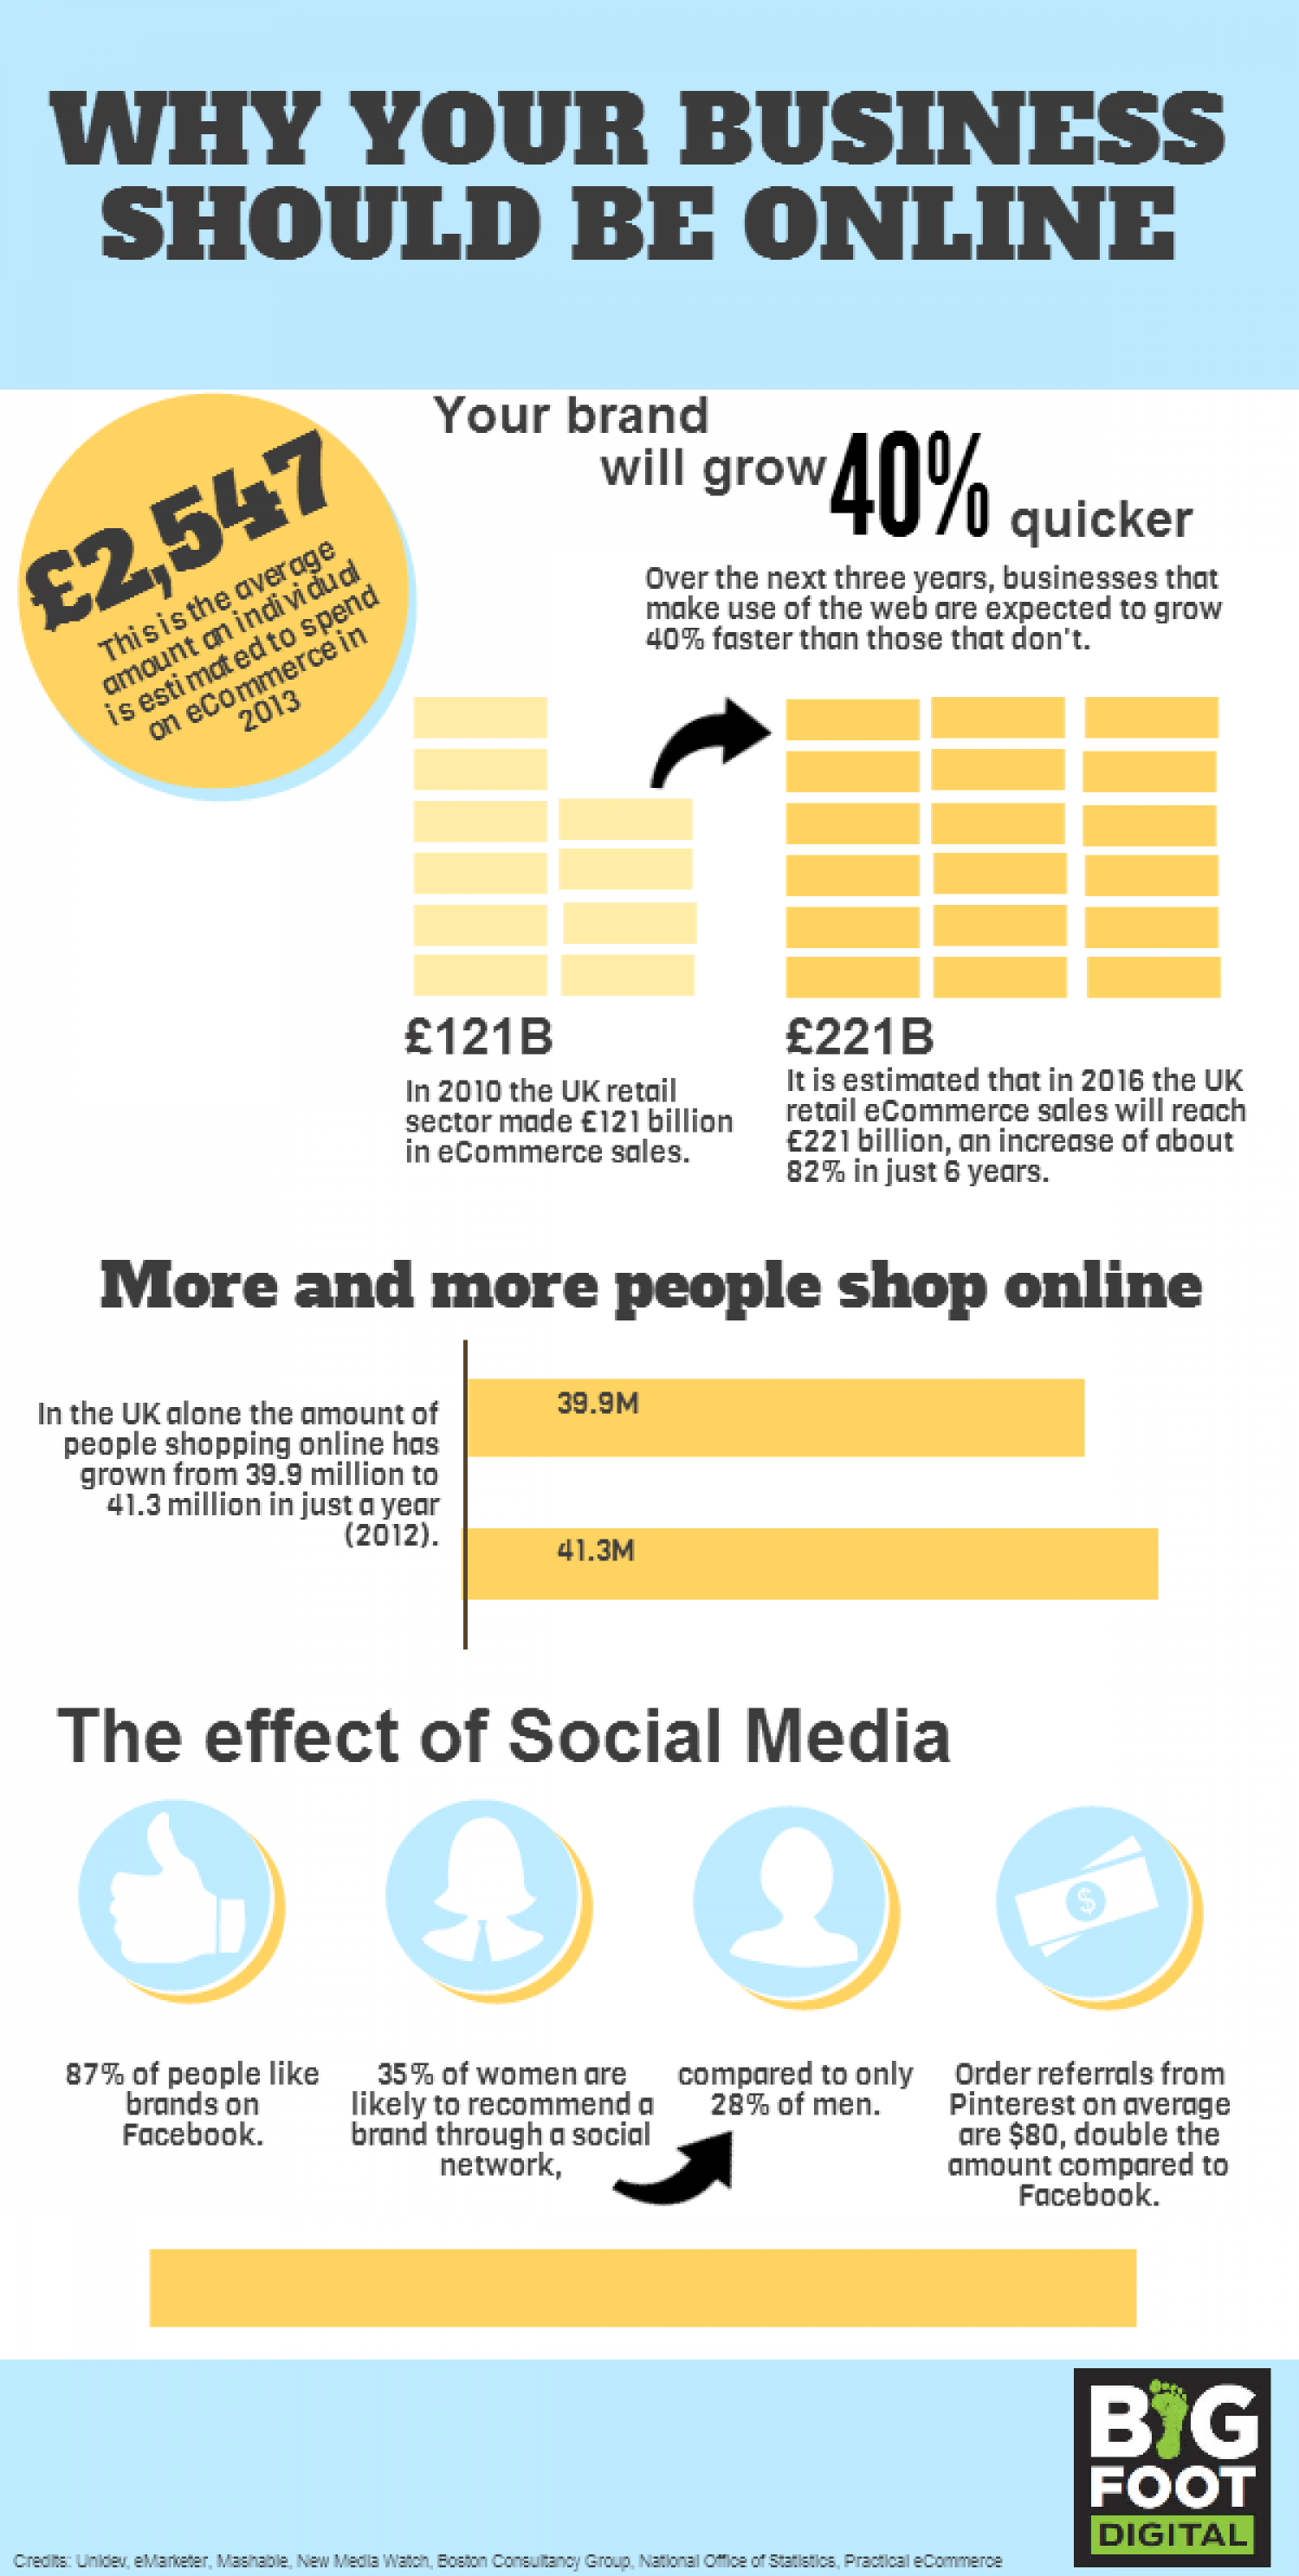 Why Your Business Should Be Online Infographic